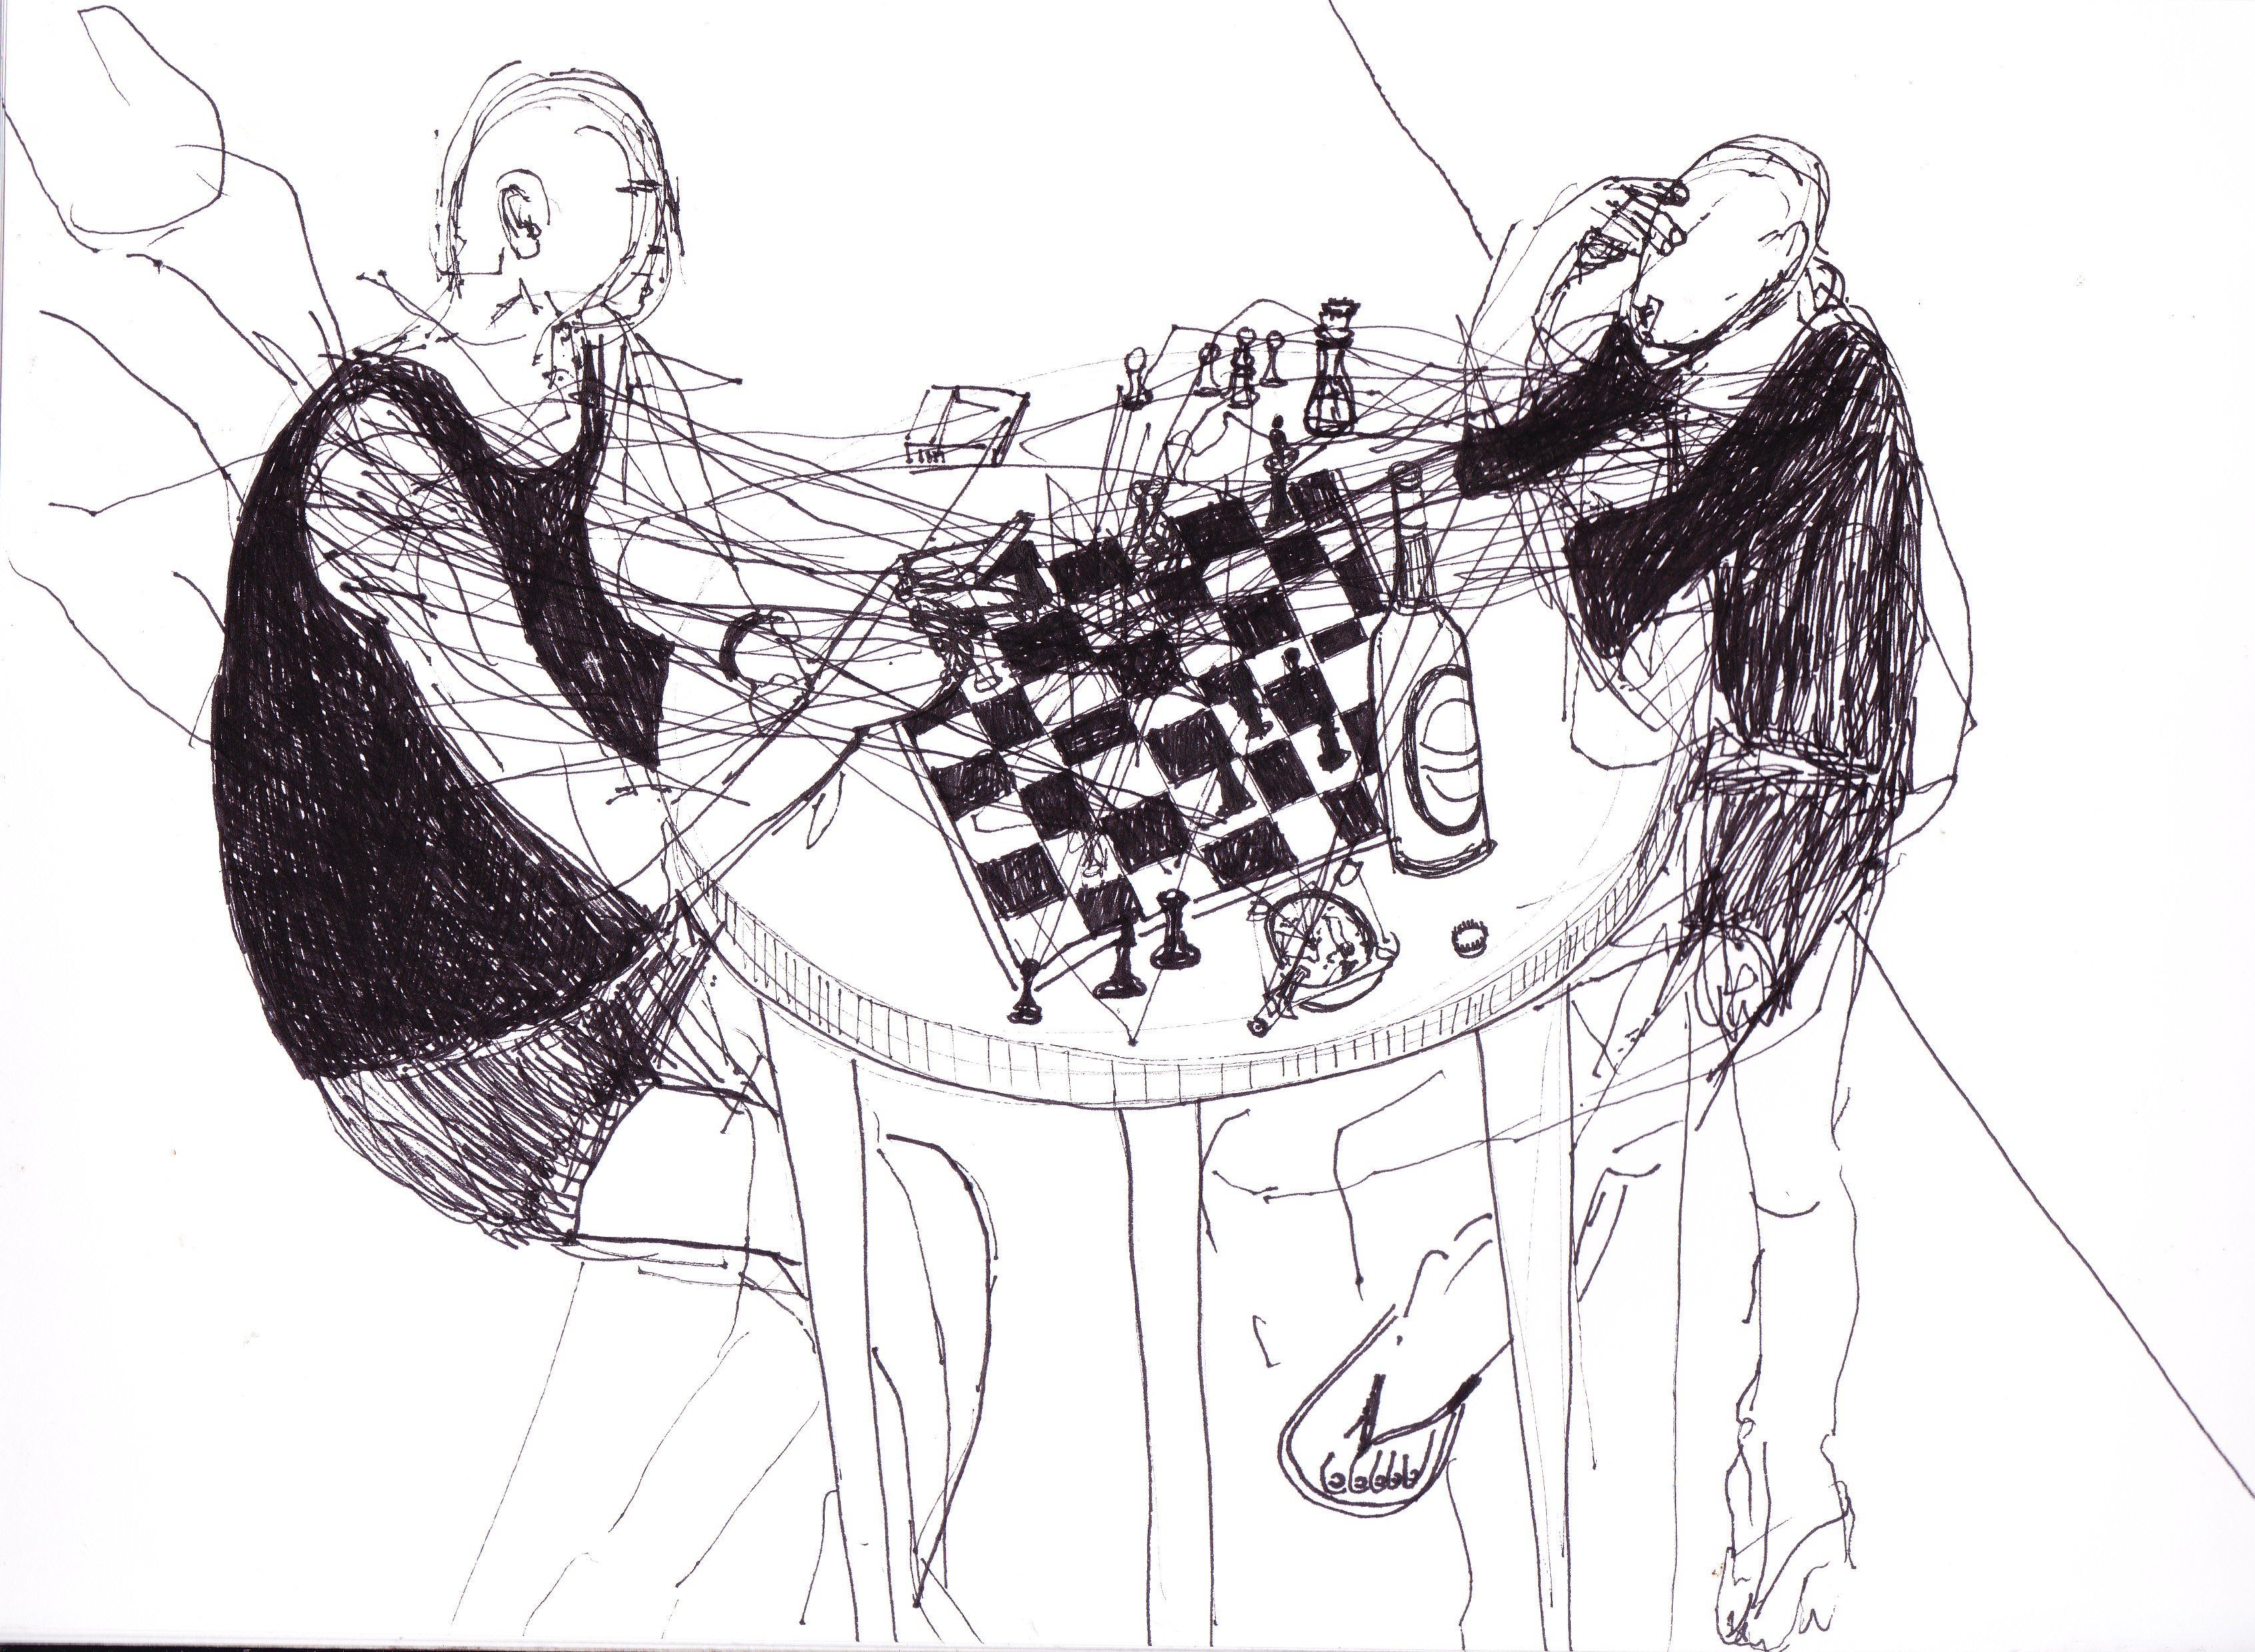 Chess Drawings | רישומי שח